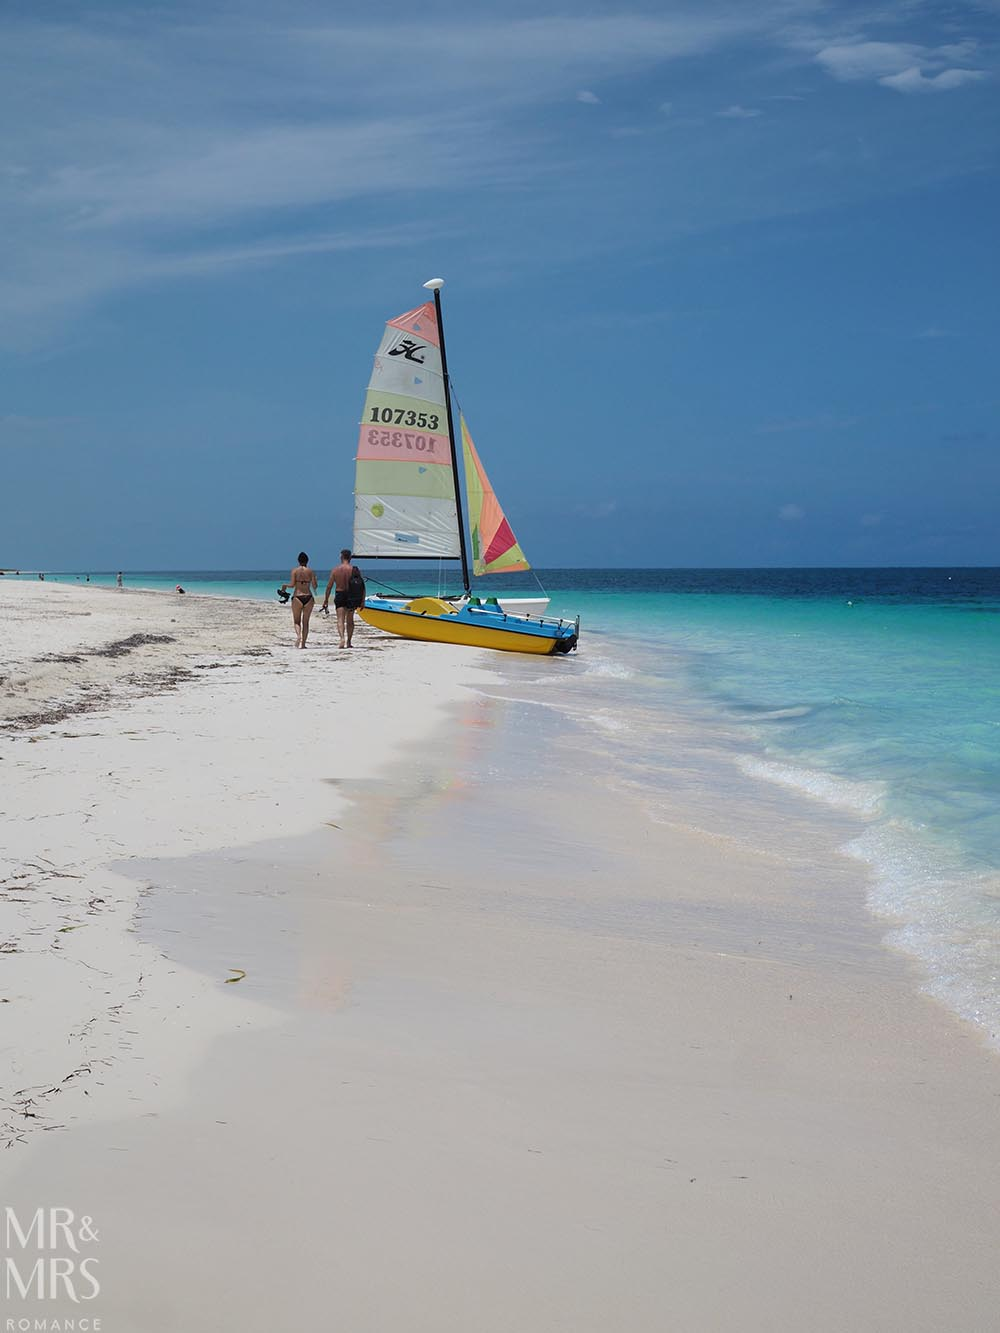 Honeymoon itinerary Cuba - Cayo Levisa